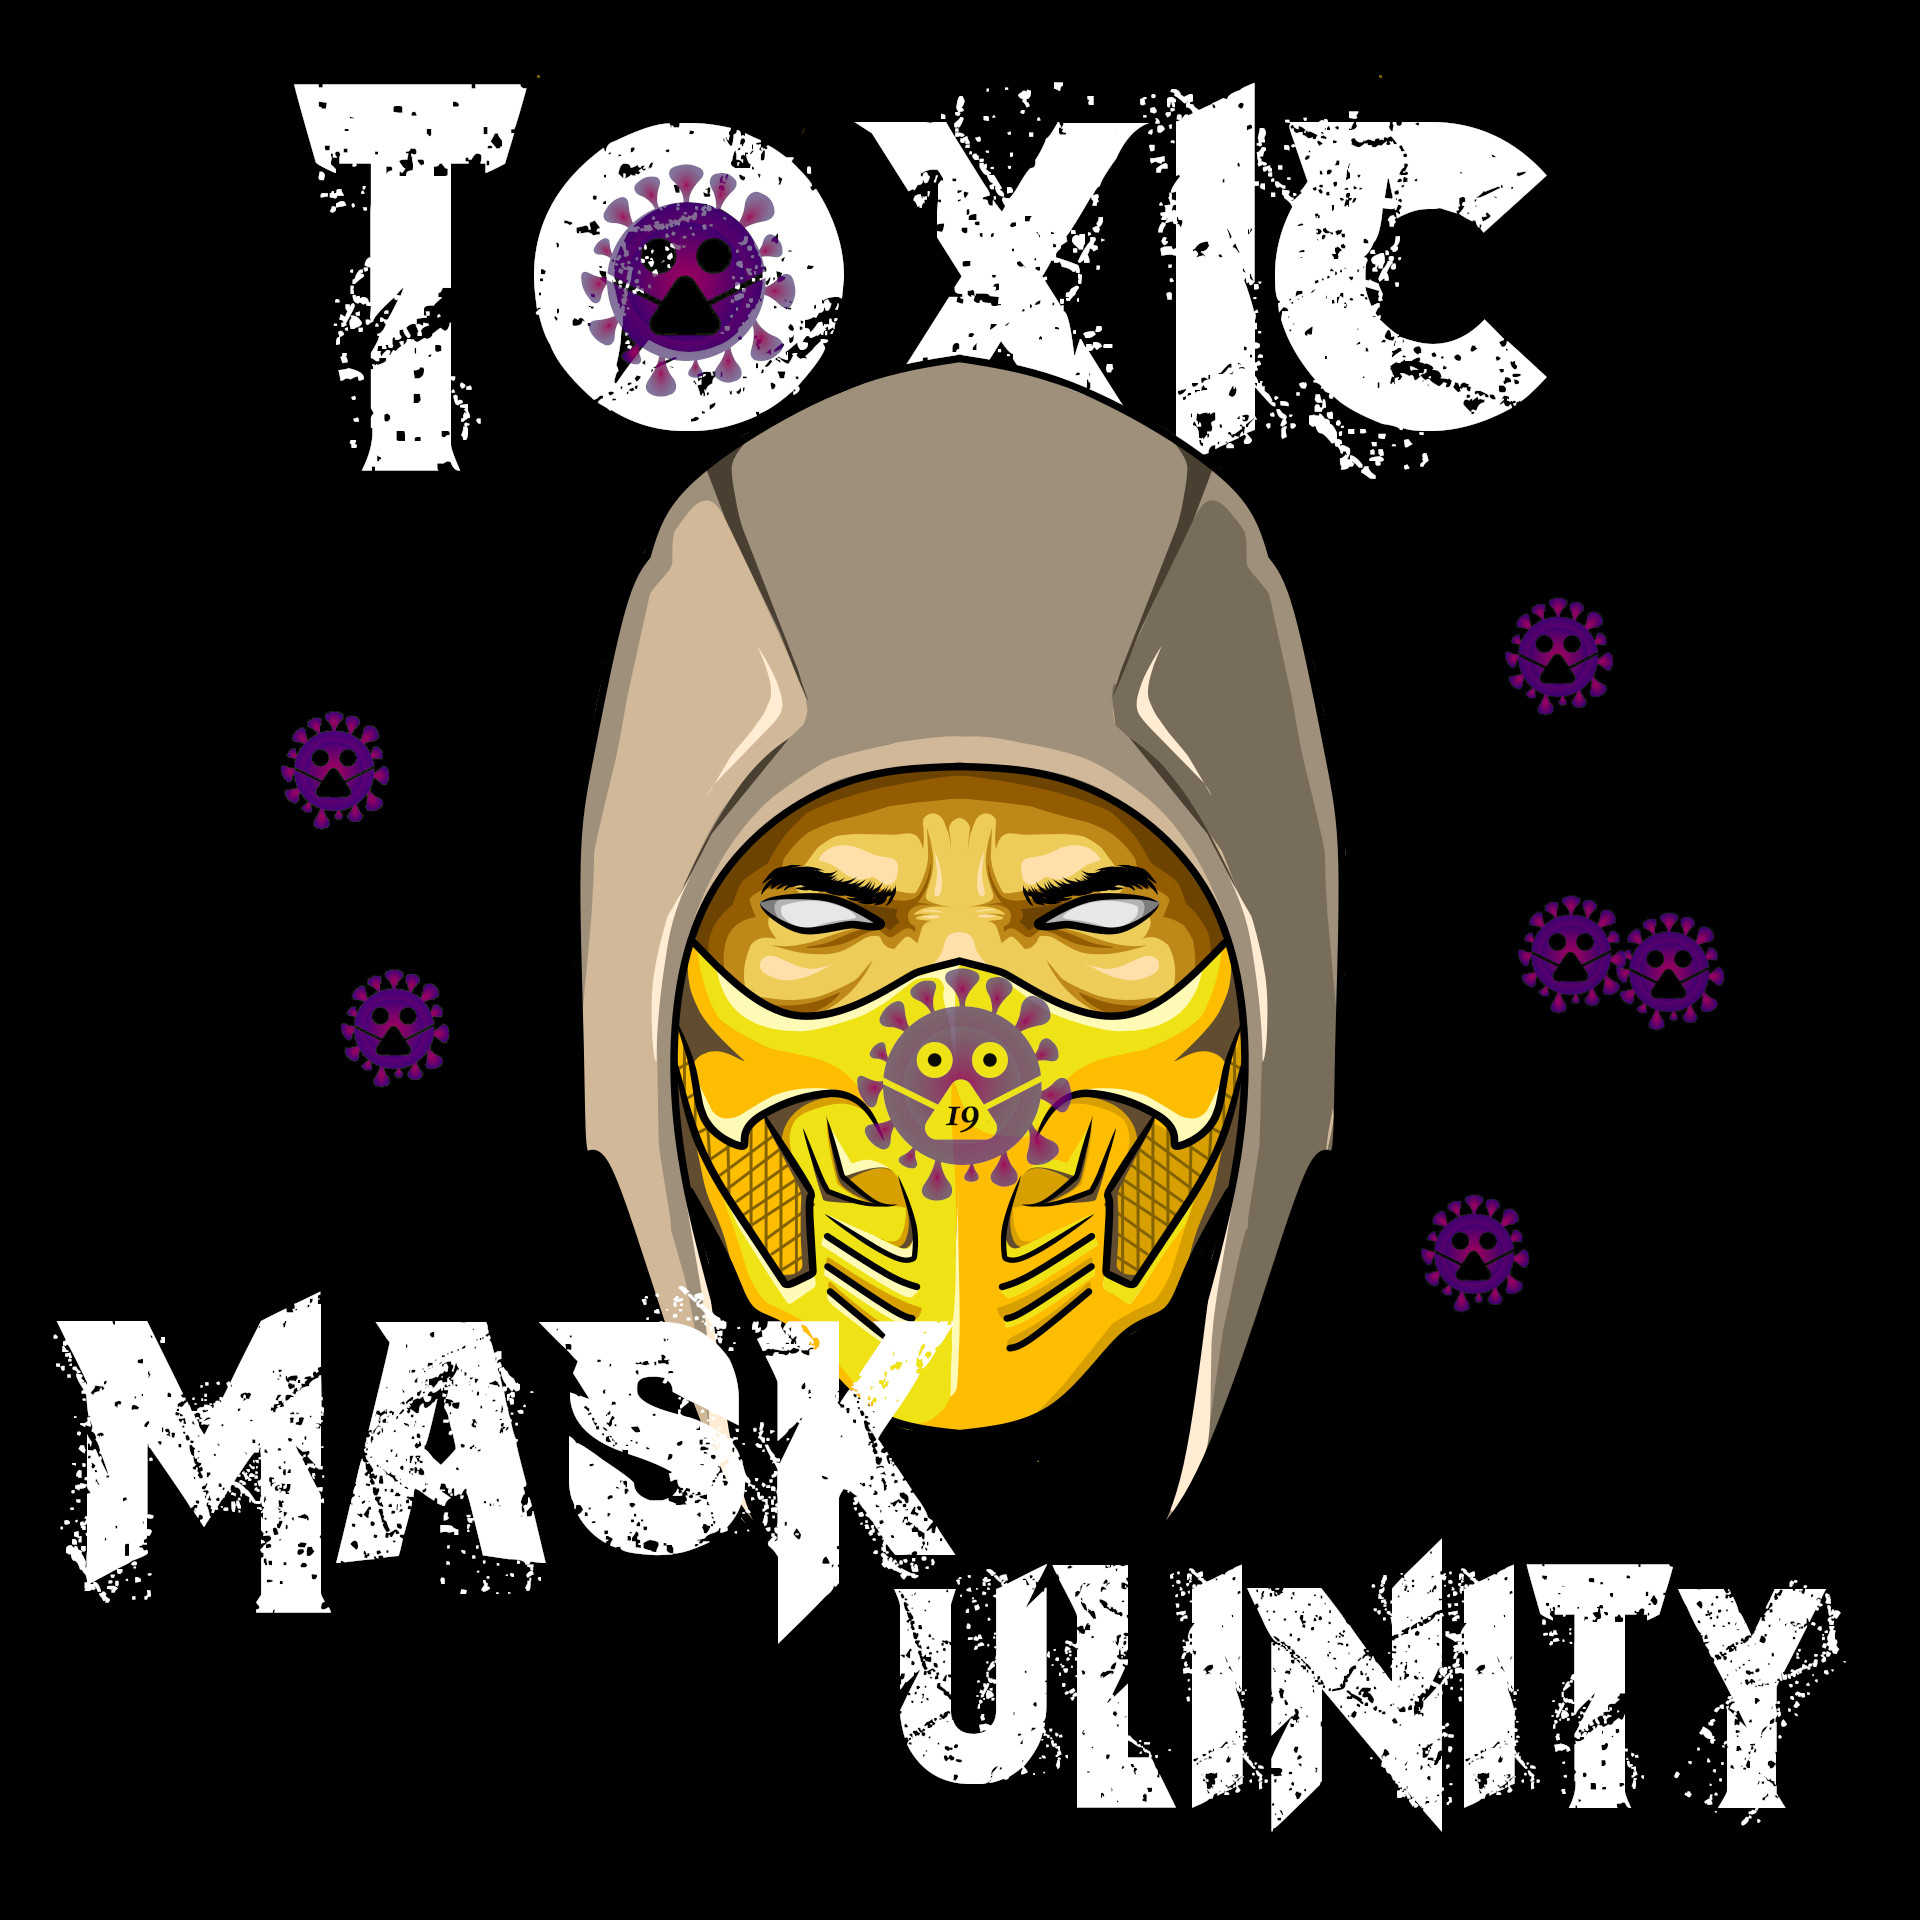 Toxic Masculinity and Masks in the Age of COVID-19